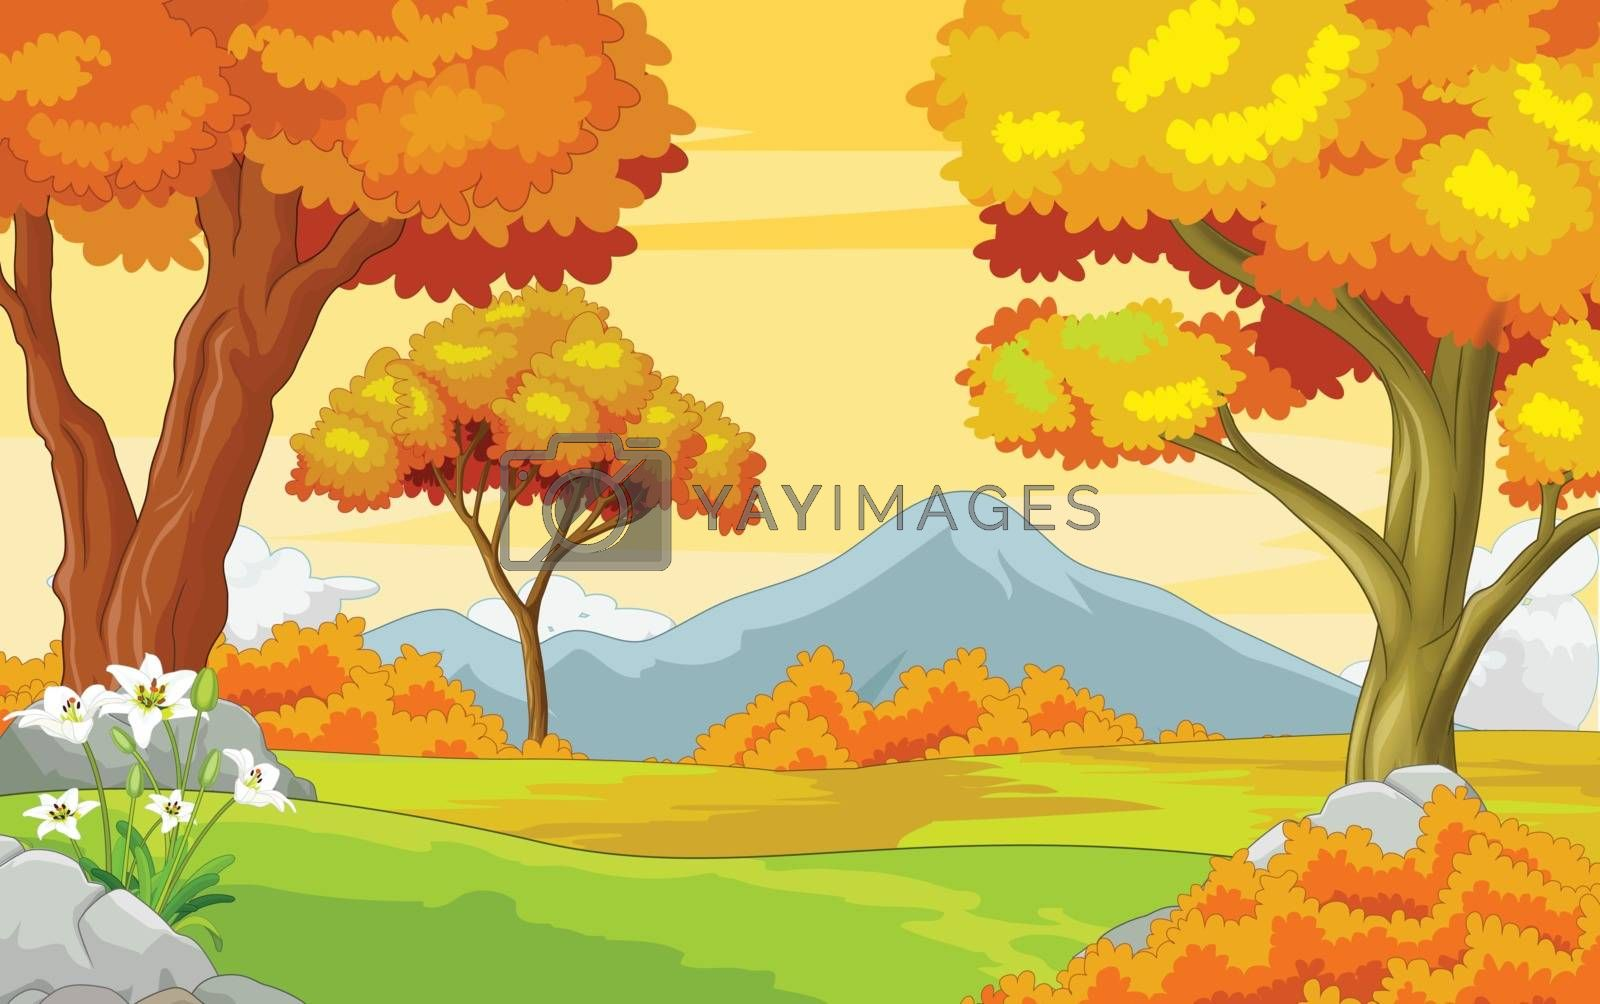 Royalty free image of Autumn Forest With Mountain Background by sujono